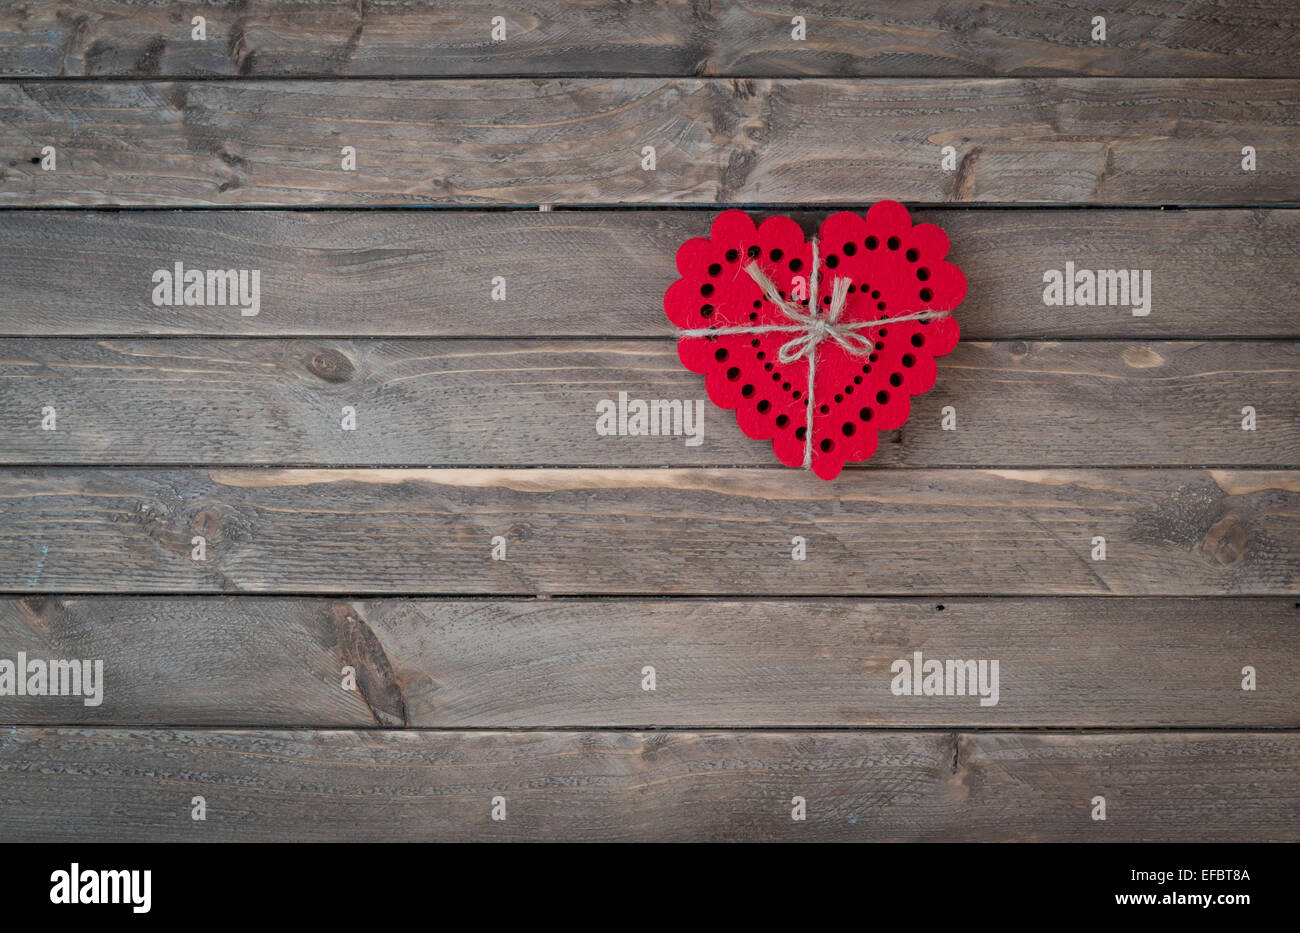 Heart shapes tied together on a wooden background. - Stock Image